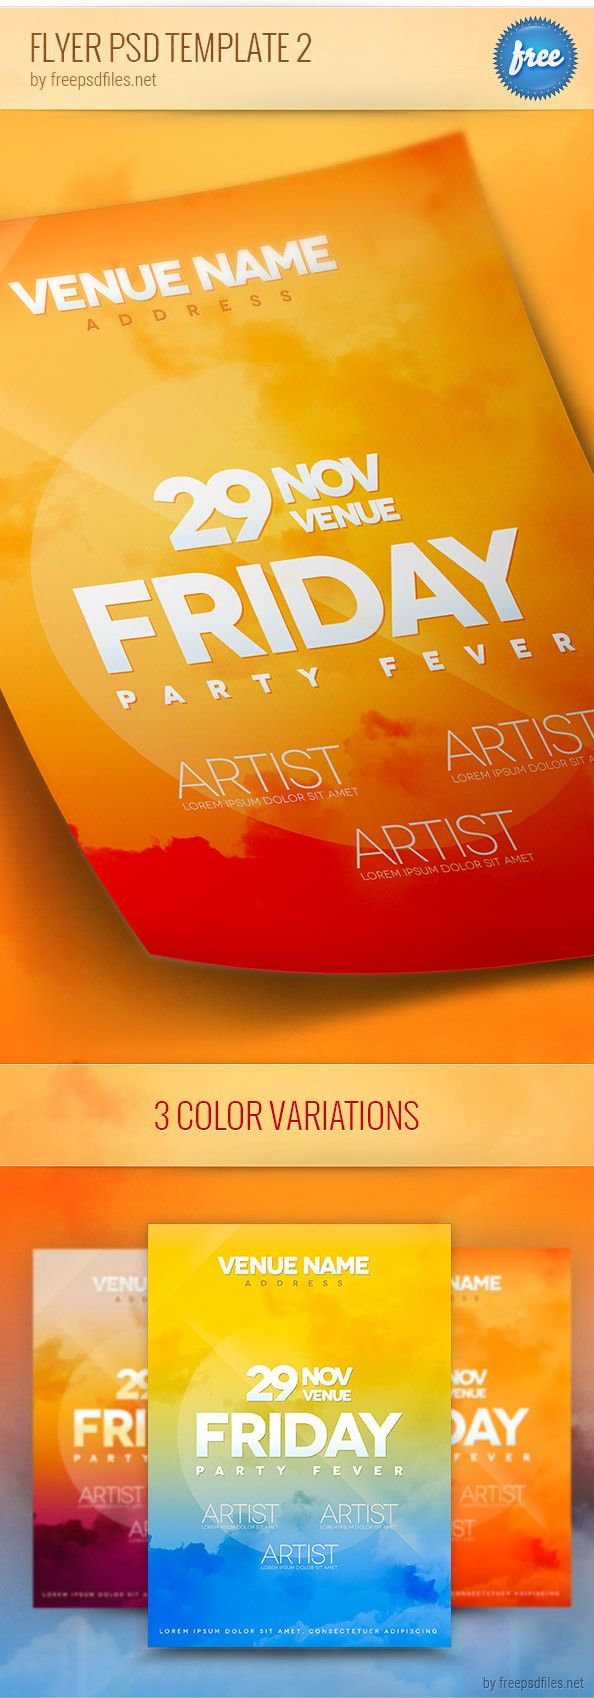 17 best images about flyers templates